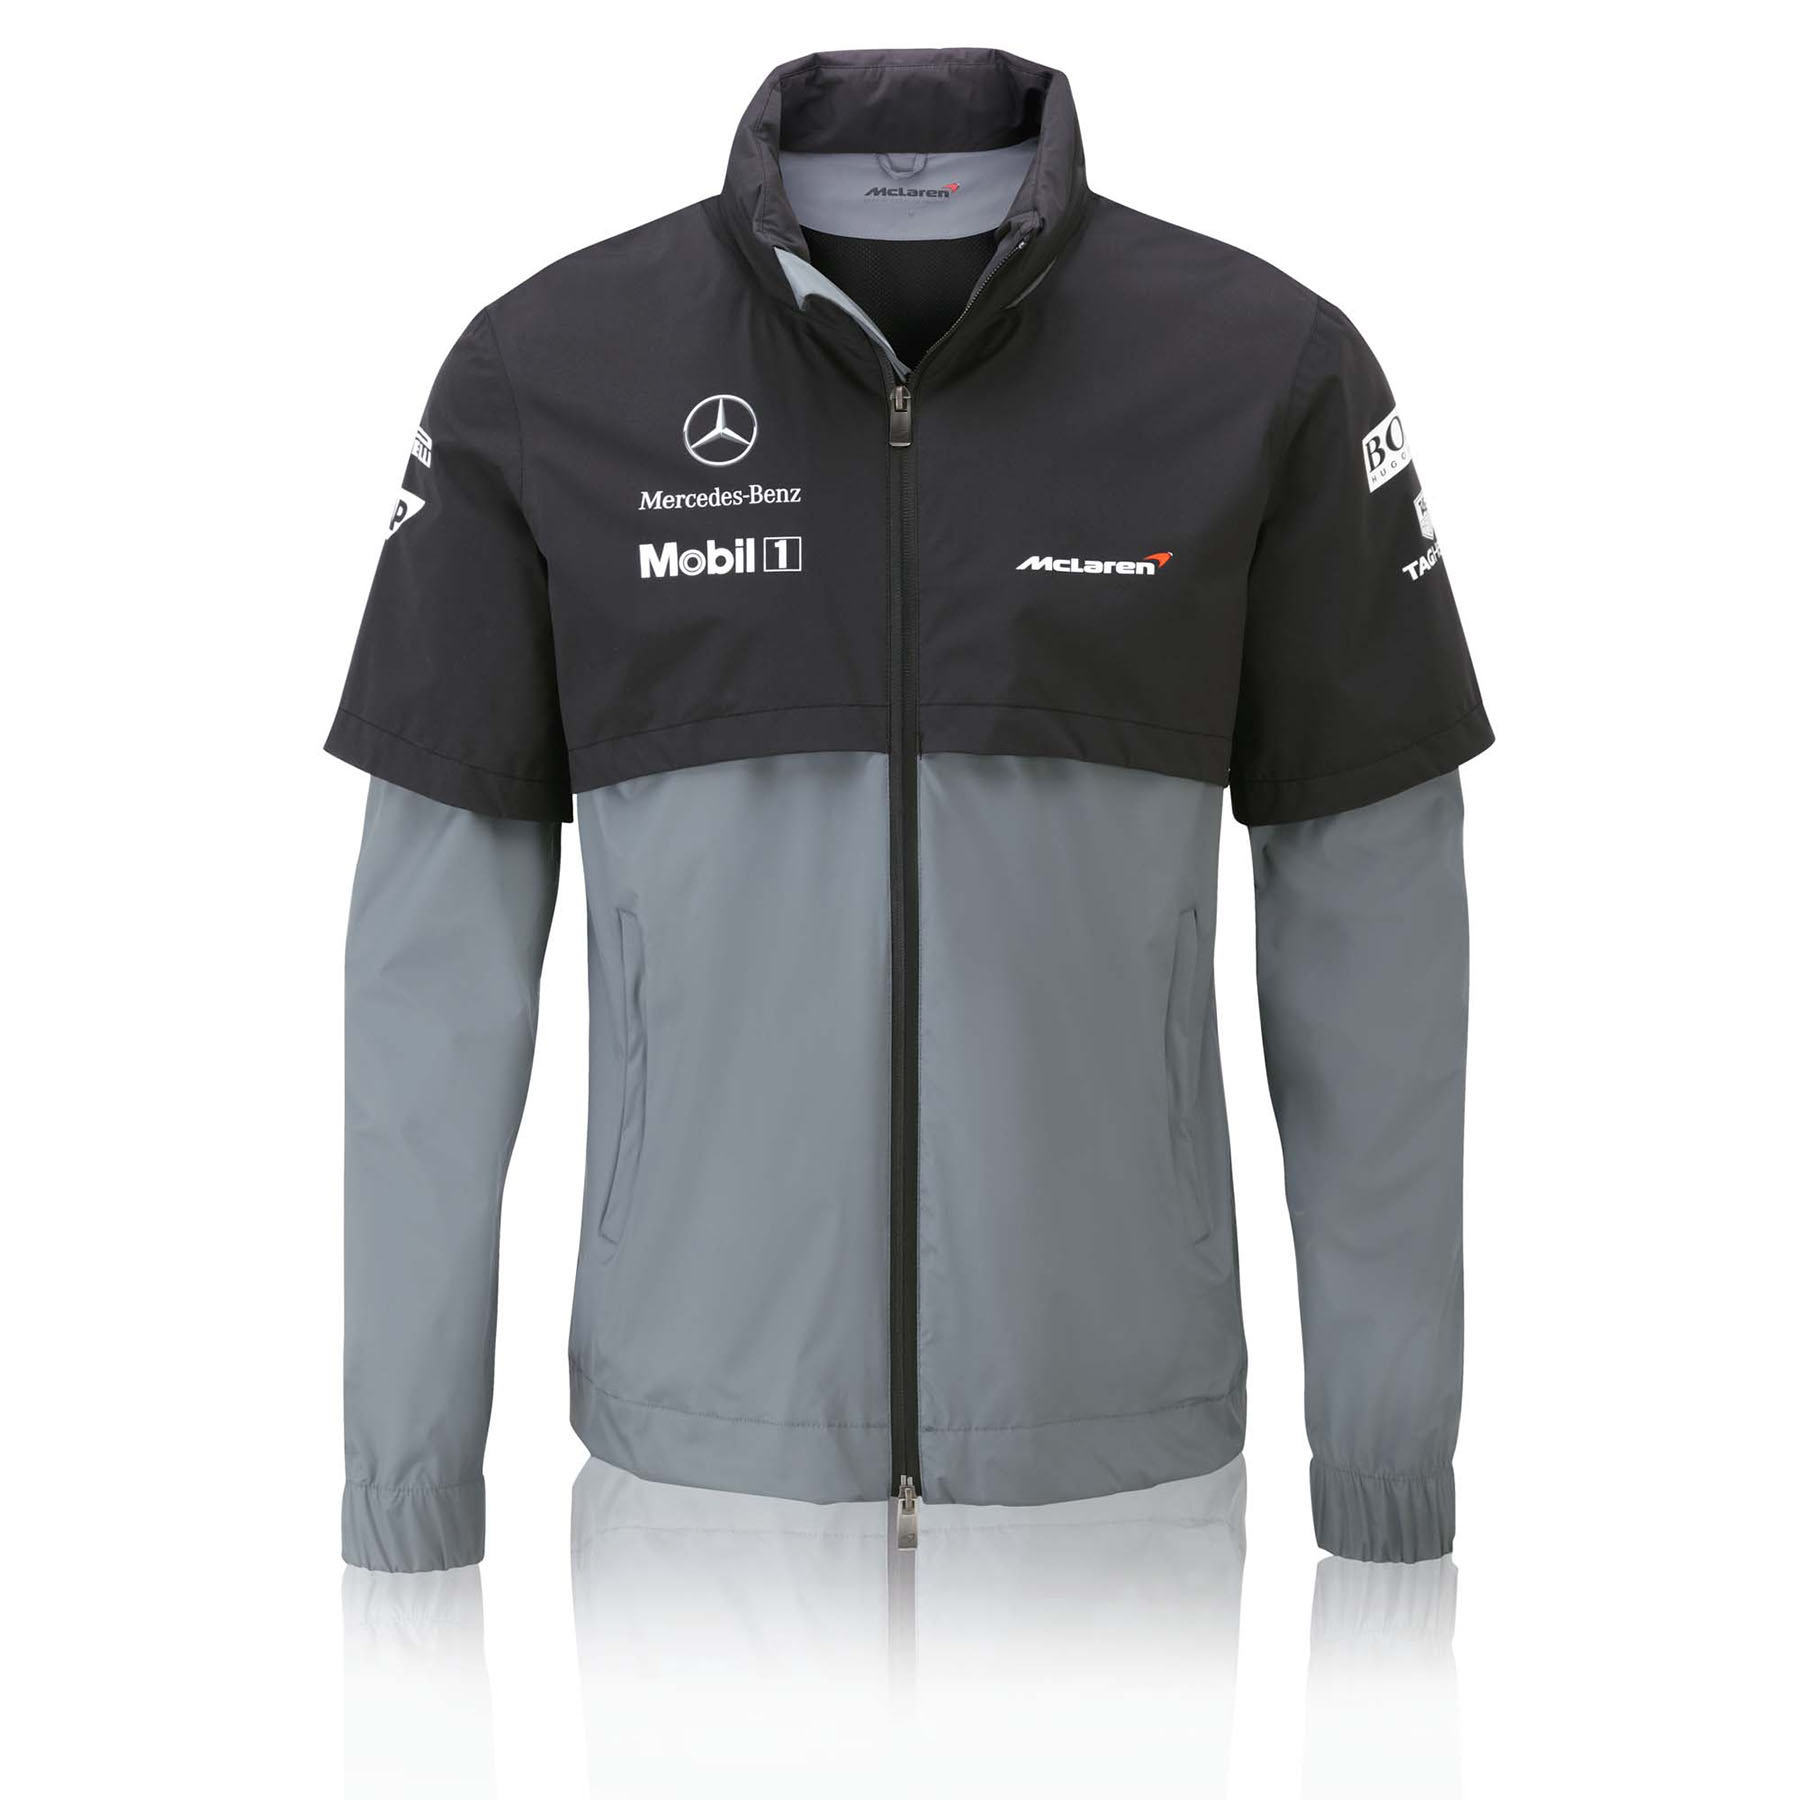 McLaren Mercedes 2014 Team Waterproof Jacket